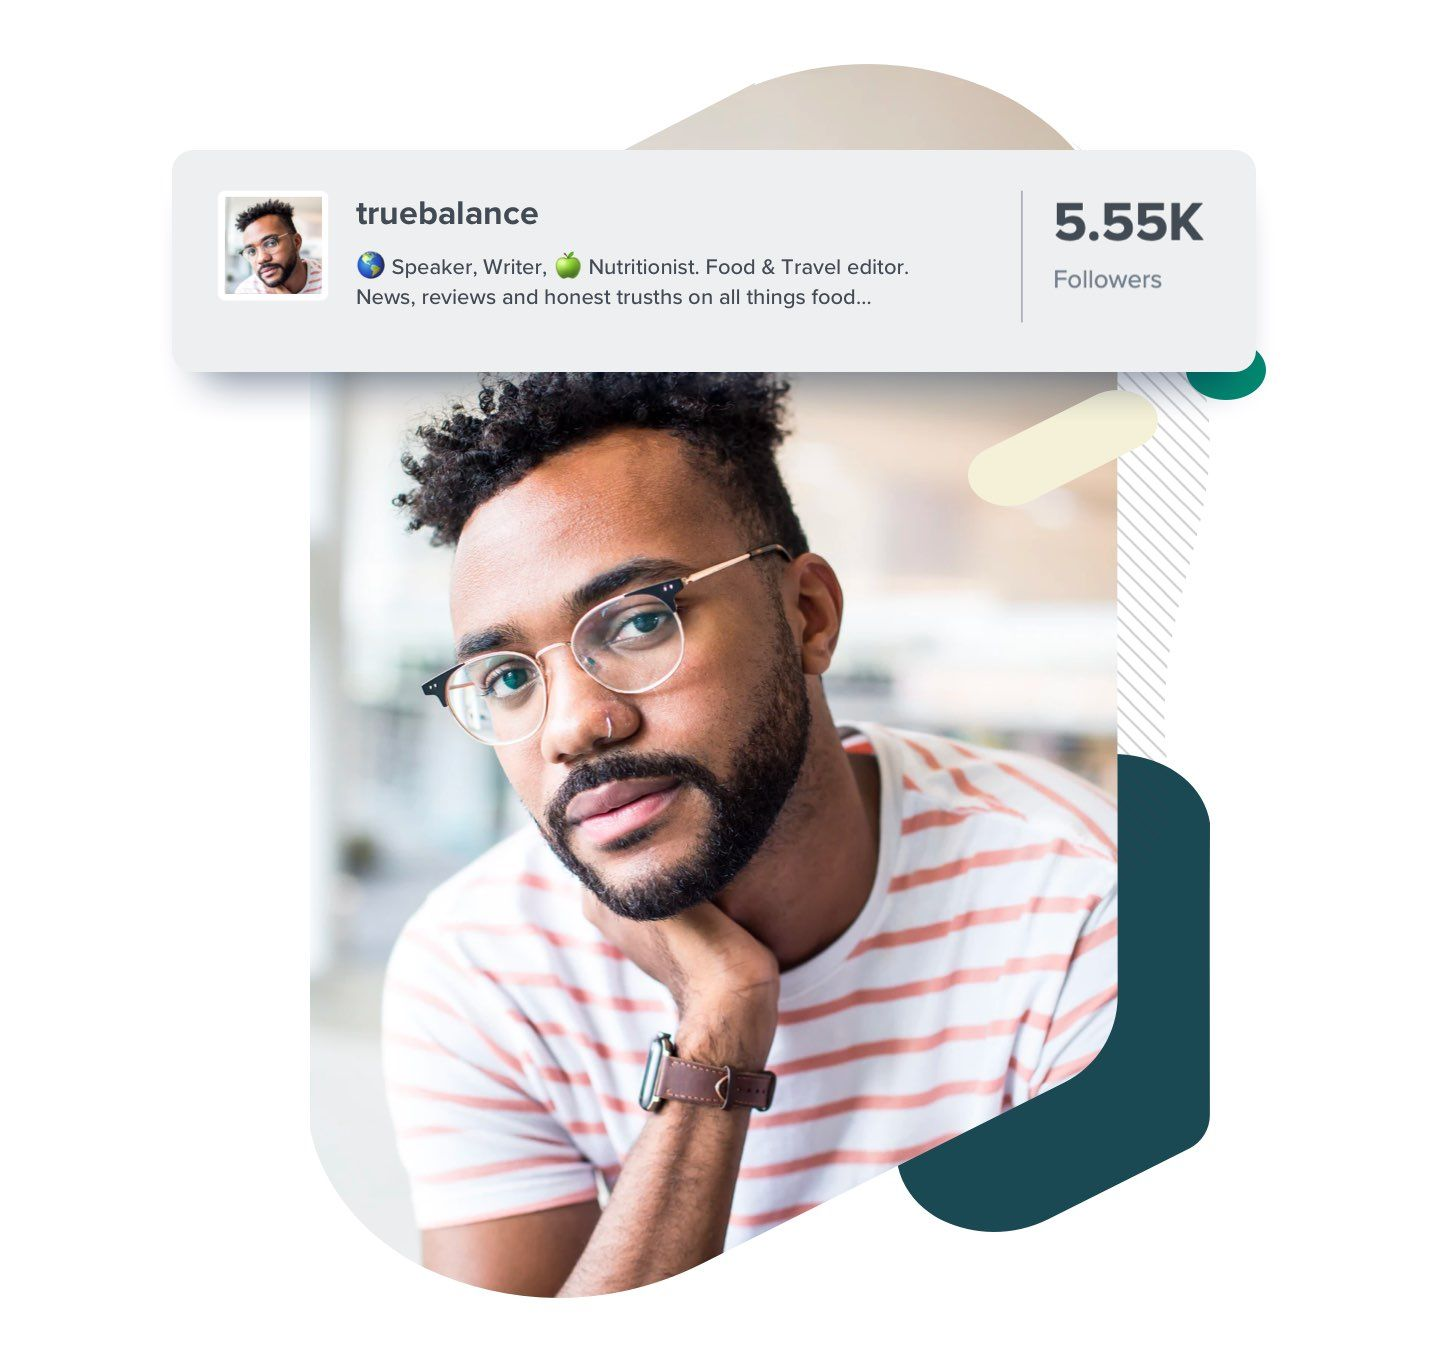 image of influencer profile with bio, followers and avatar image